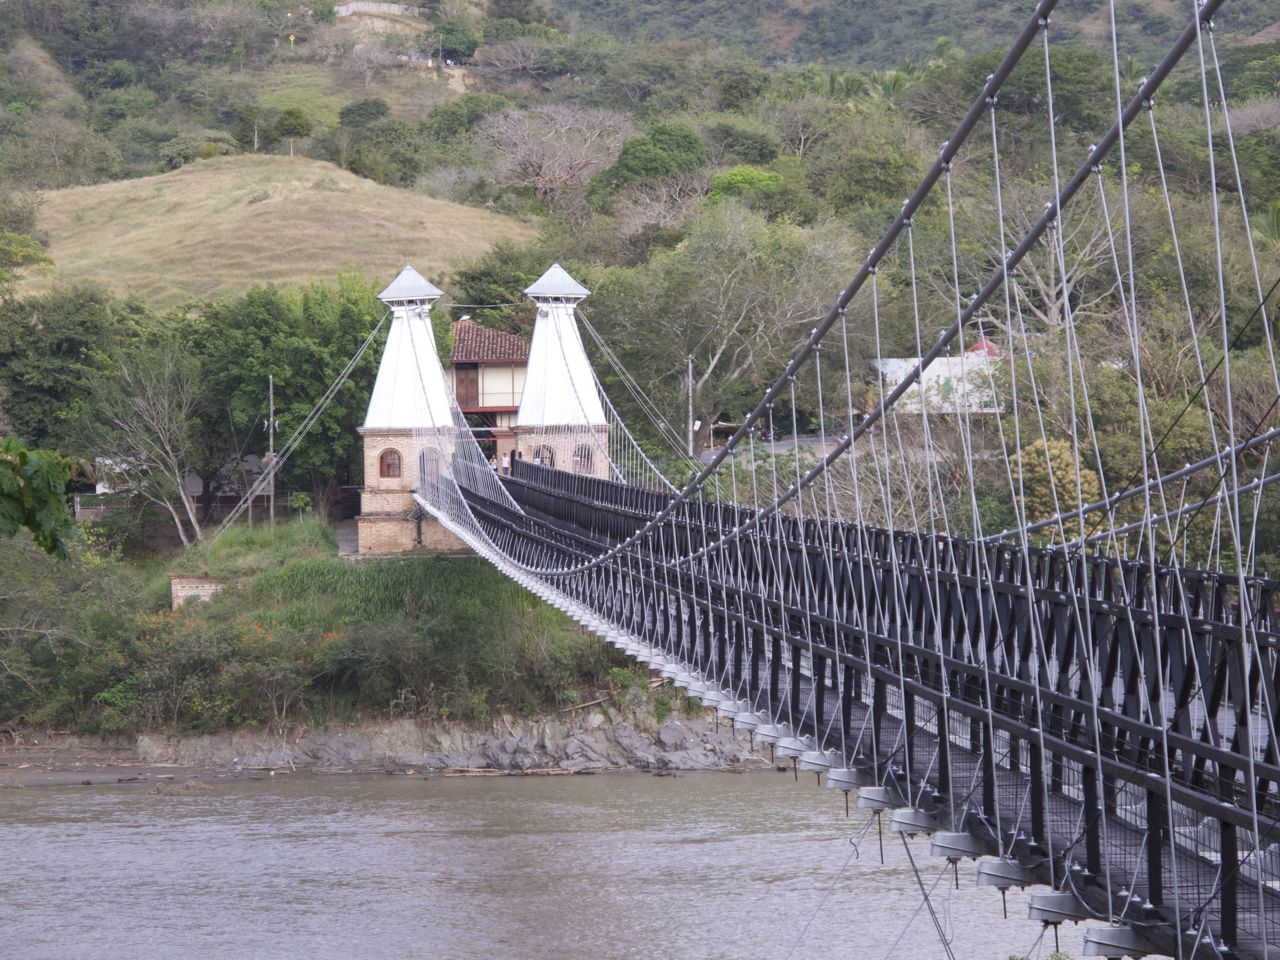 One of the oldest suspension bridges in the world